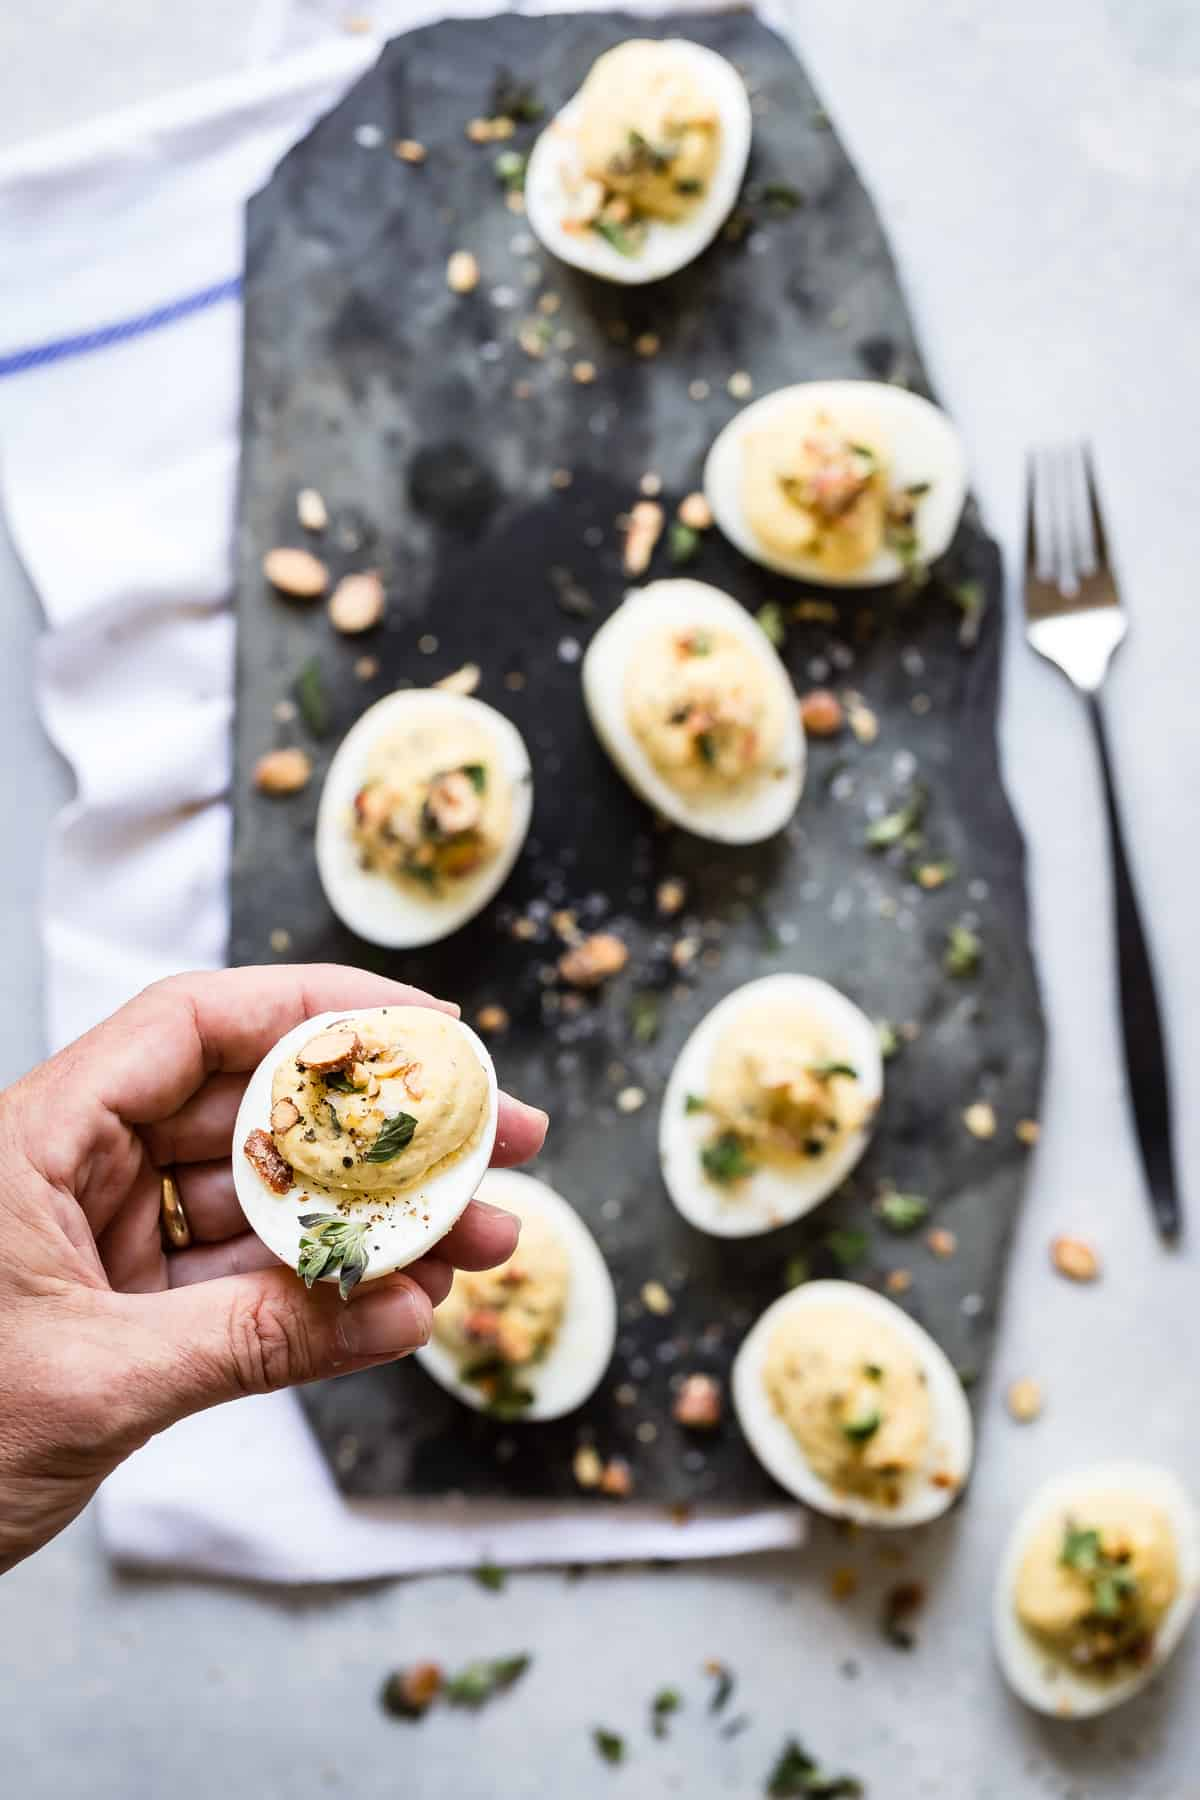 Hummus deviled eggs with fresh oregano